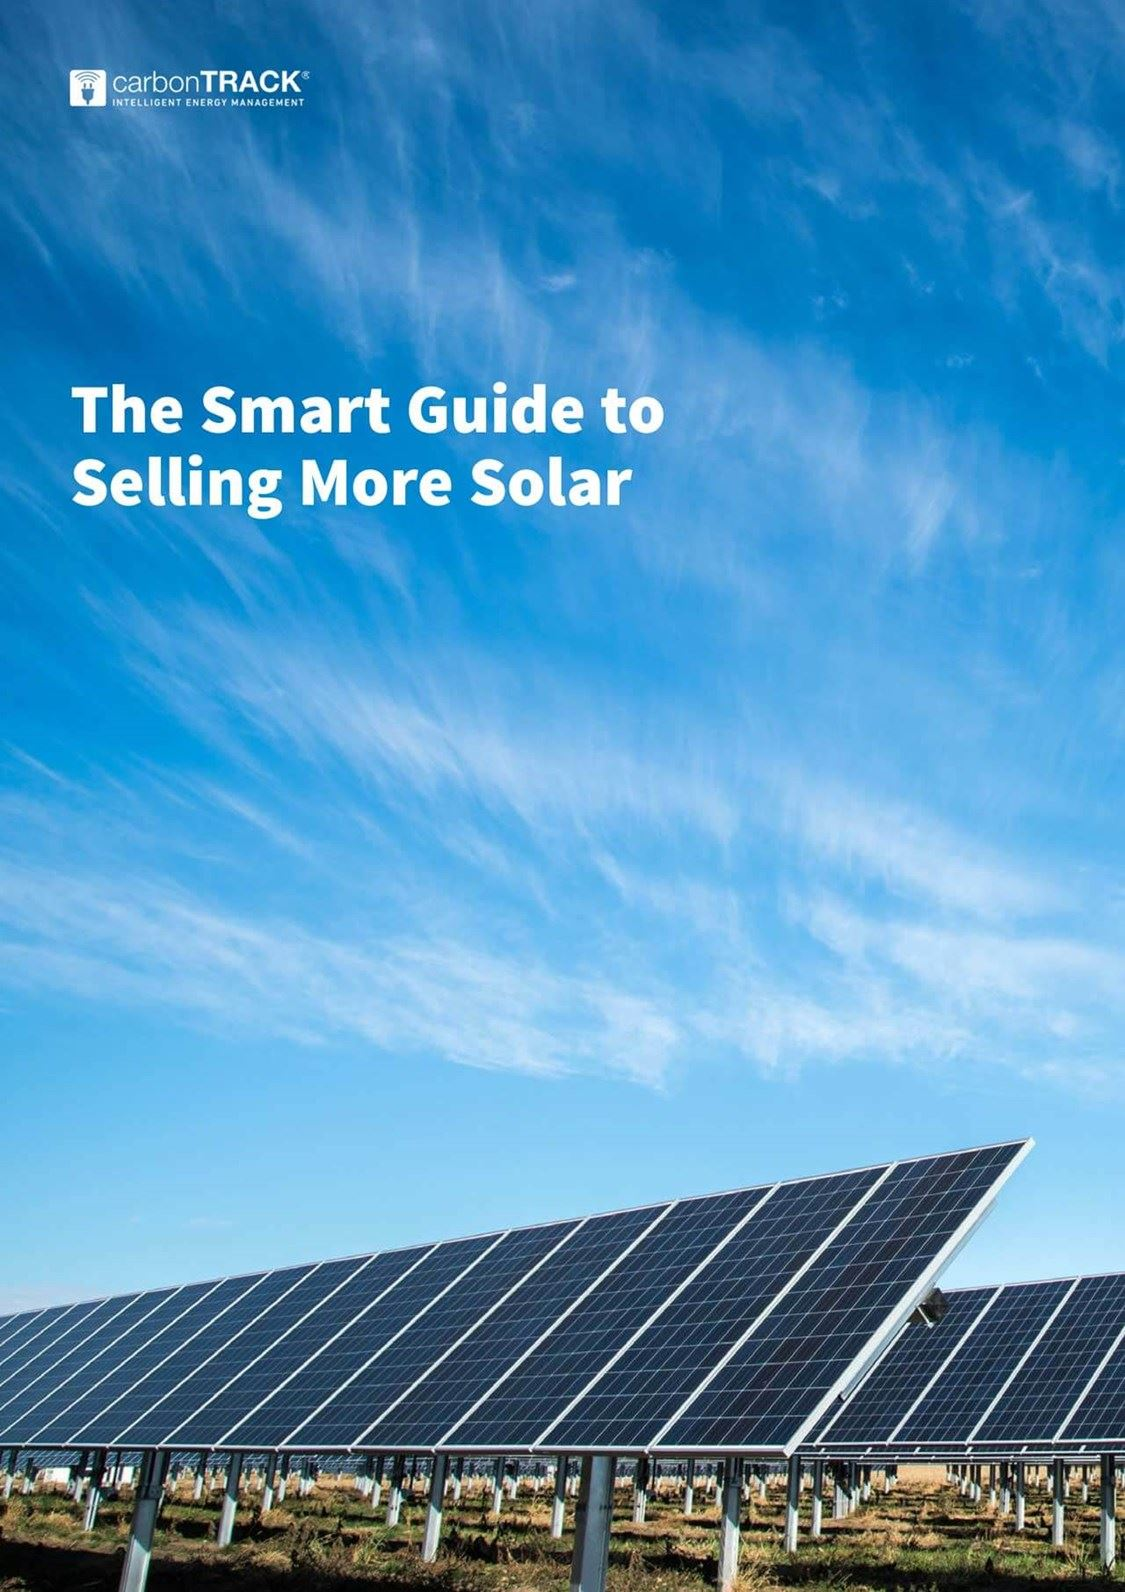 solarsellingguide-cover